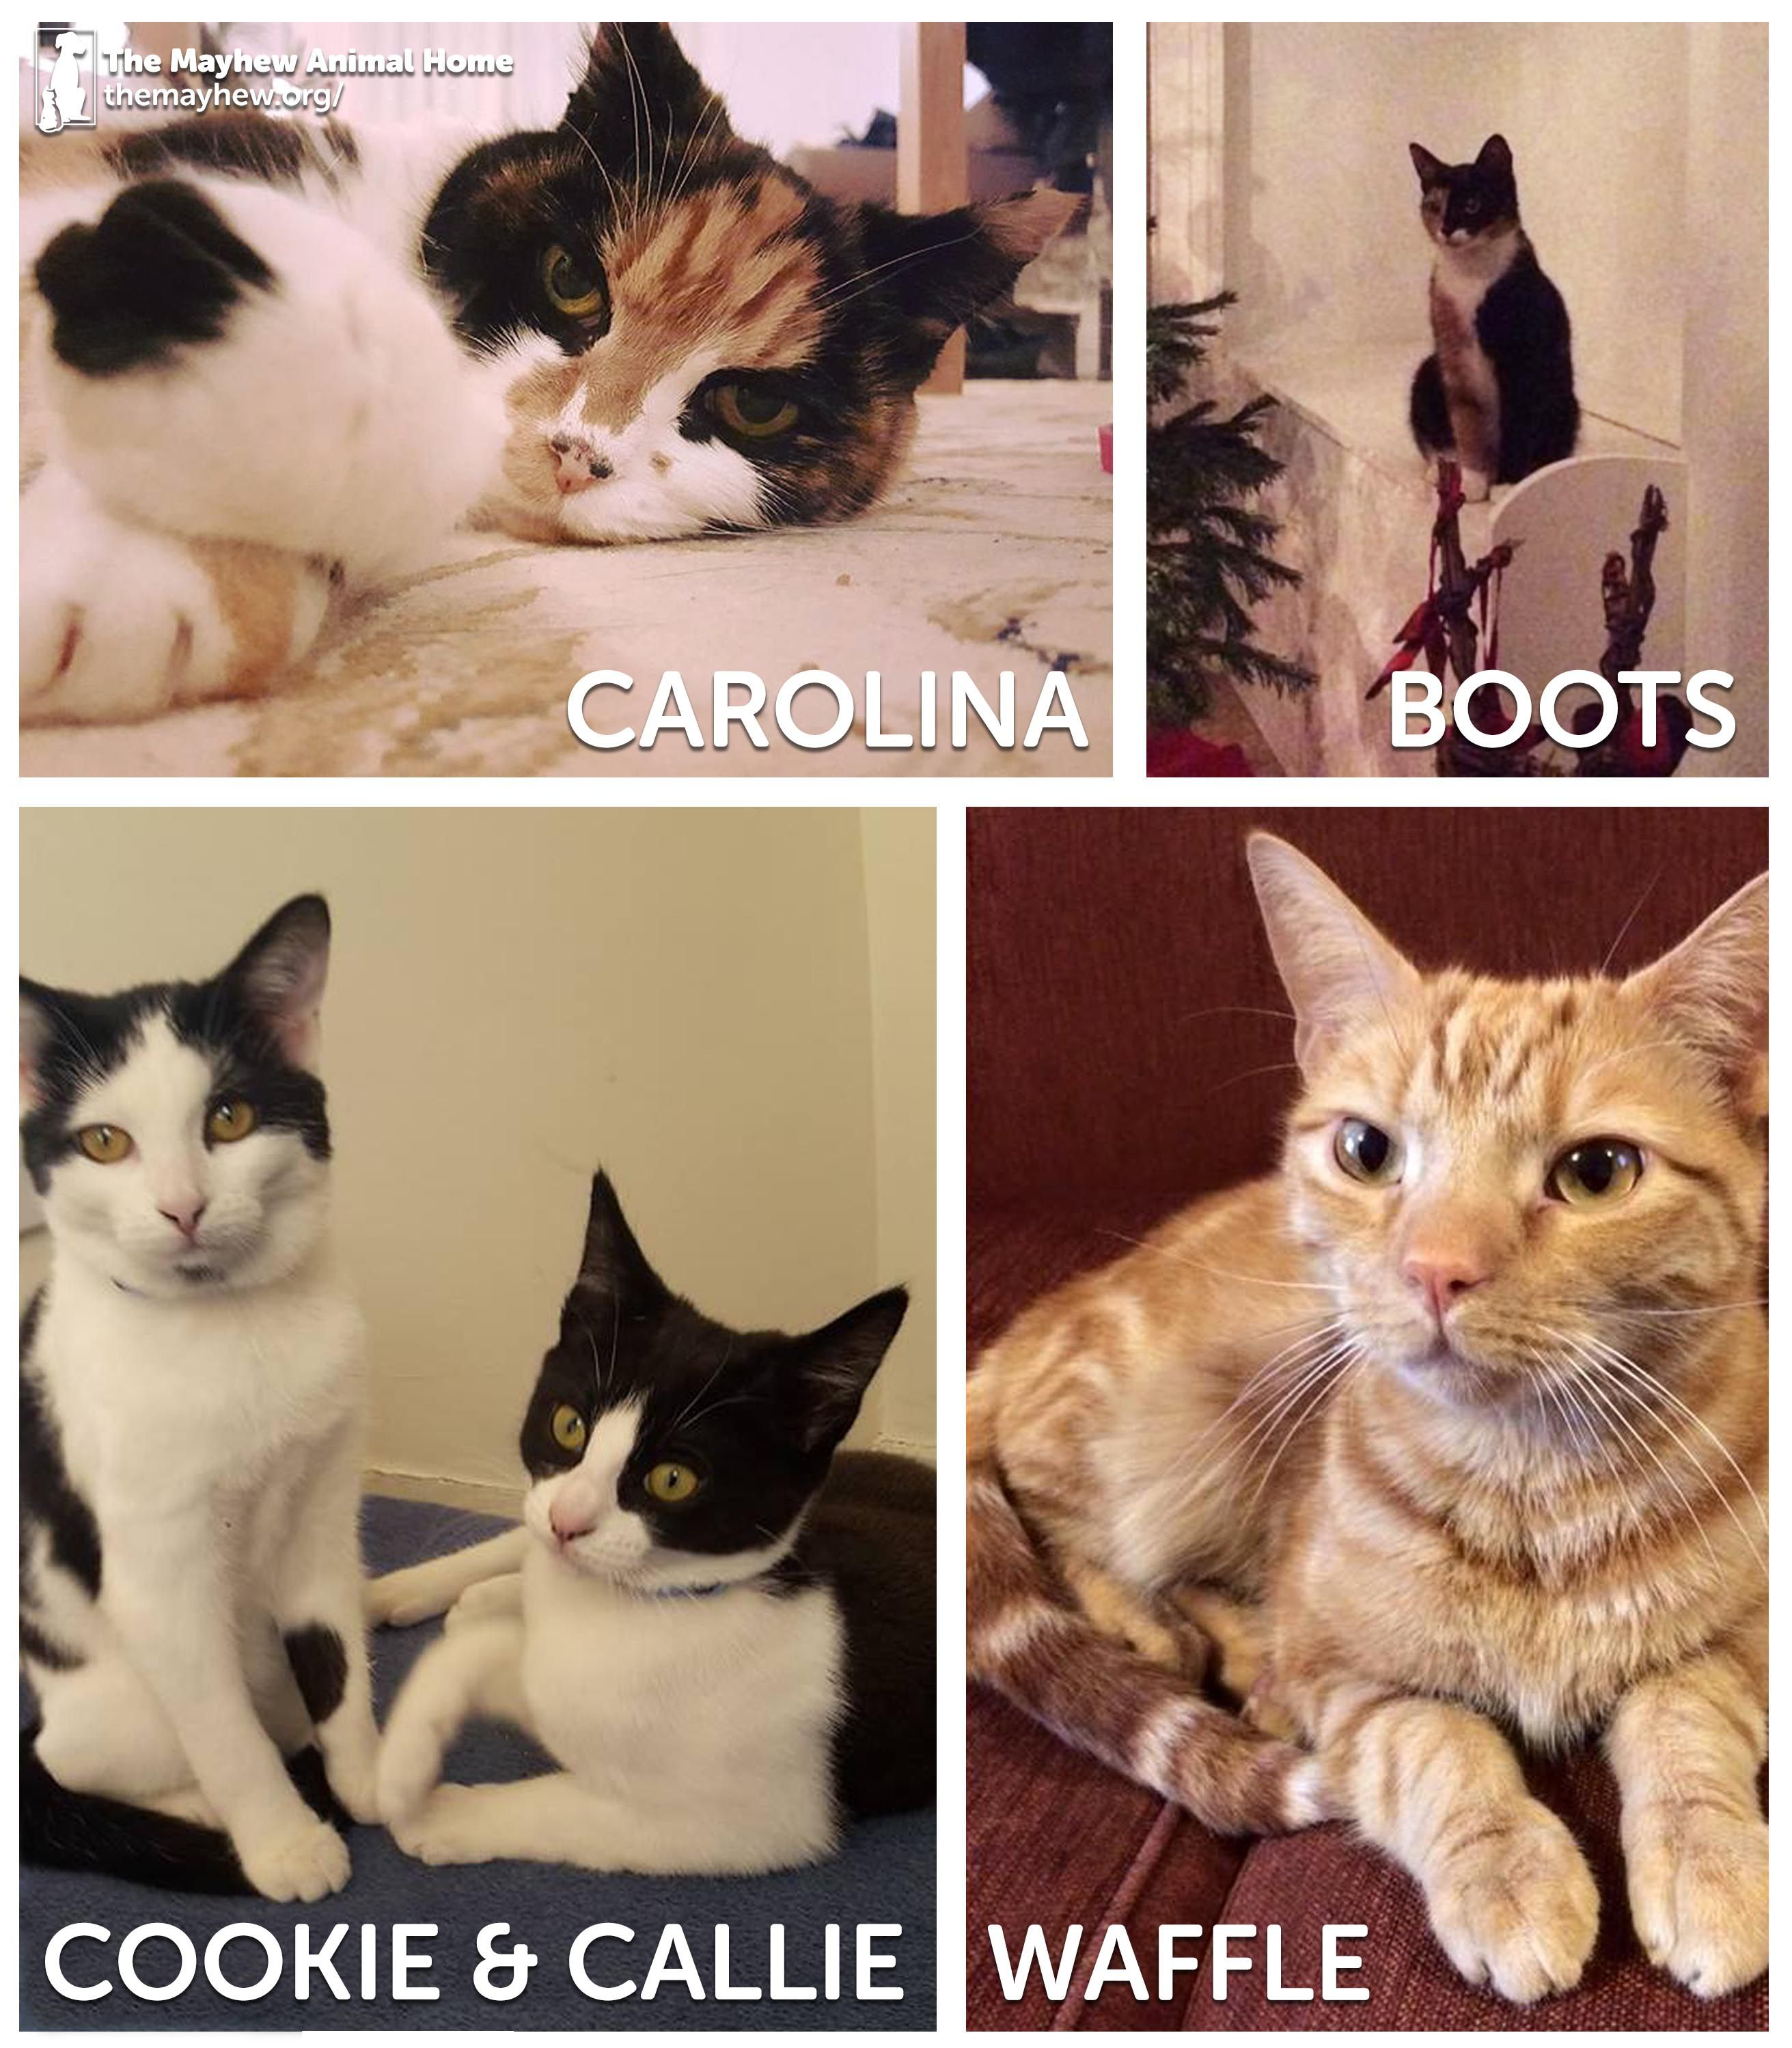 Just look at happily rehomed moggies Carolina, Boots